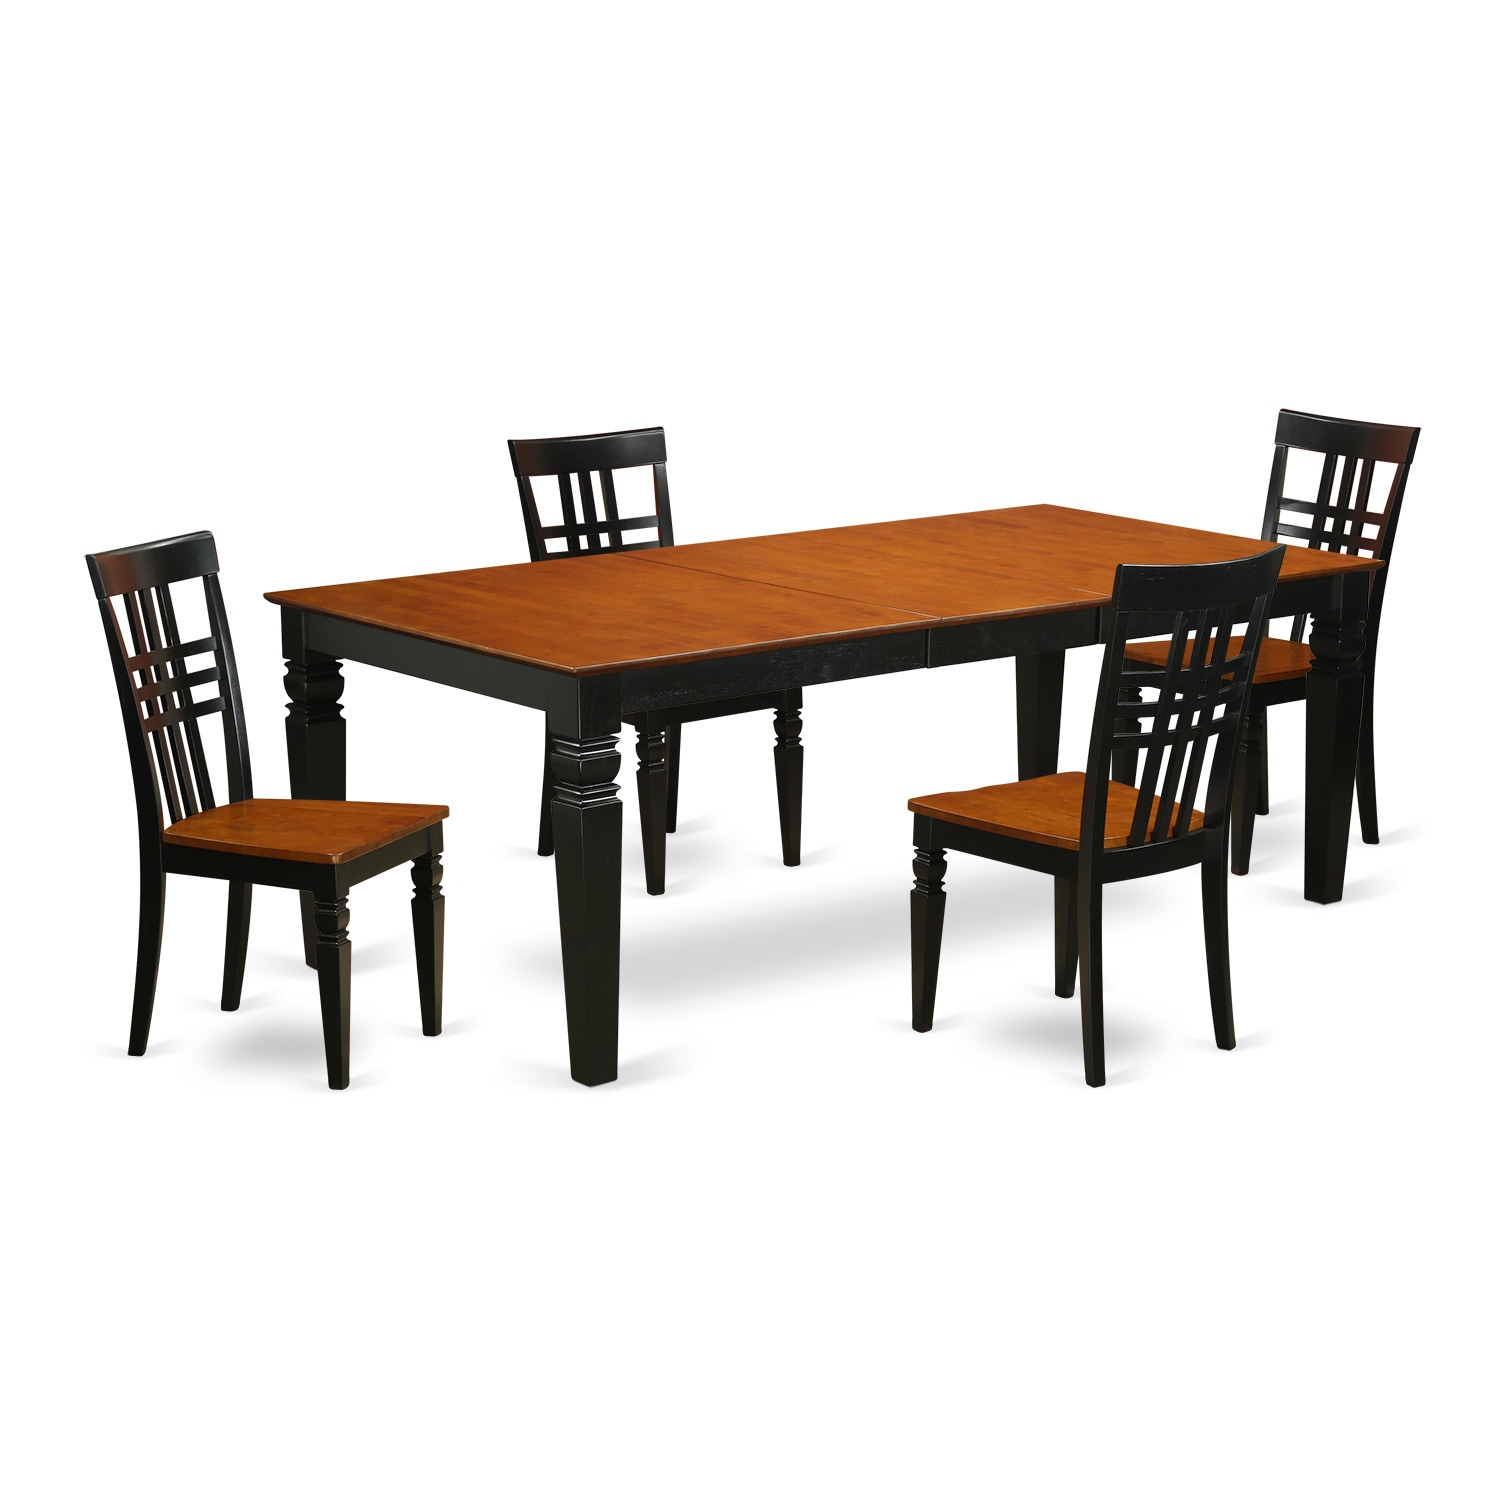 LGLG5-W 5 PC Table and chair Set (Black & Cherry), Size 5...